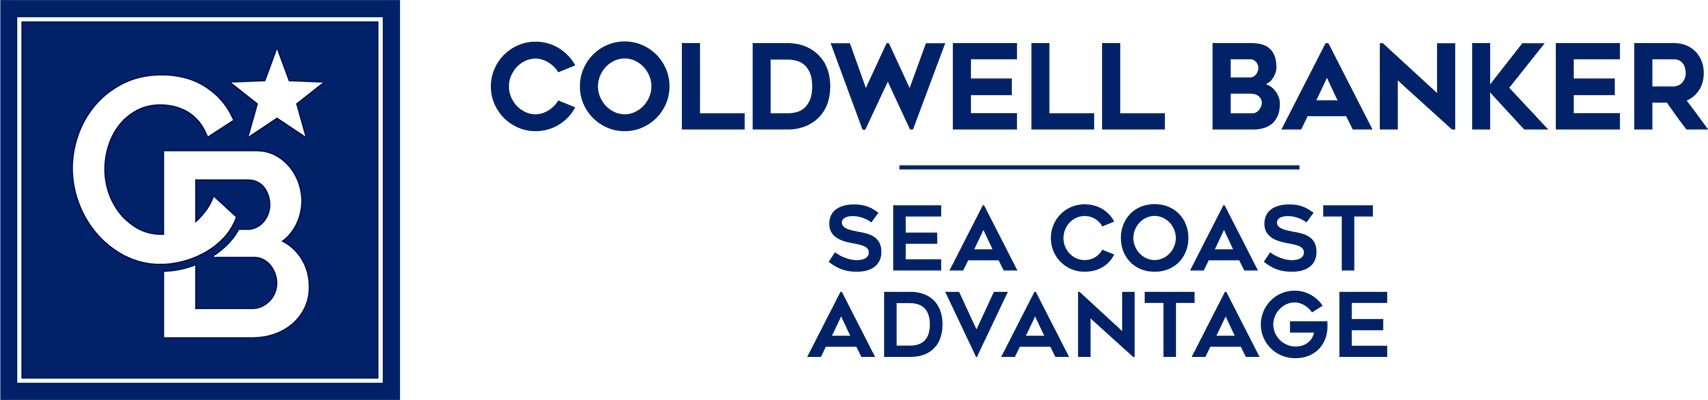 Coldwell Banker Sea Coast Advantage - Cronick and Associates